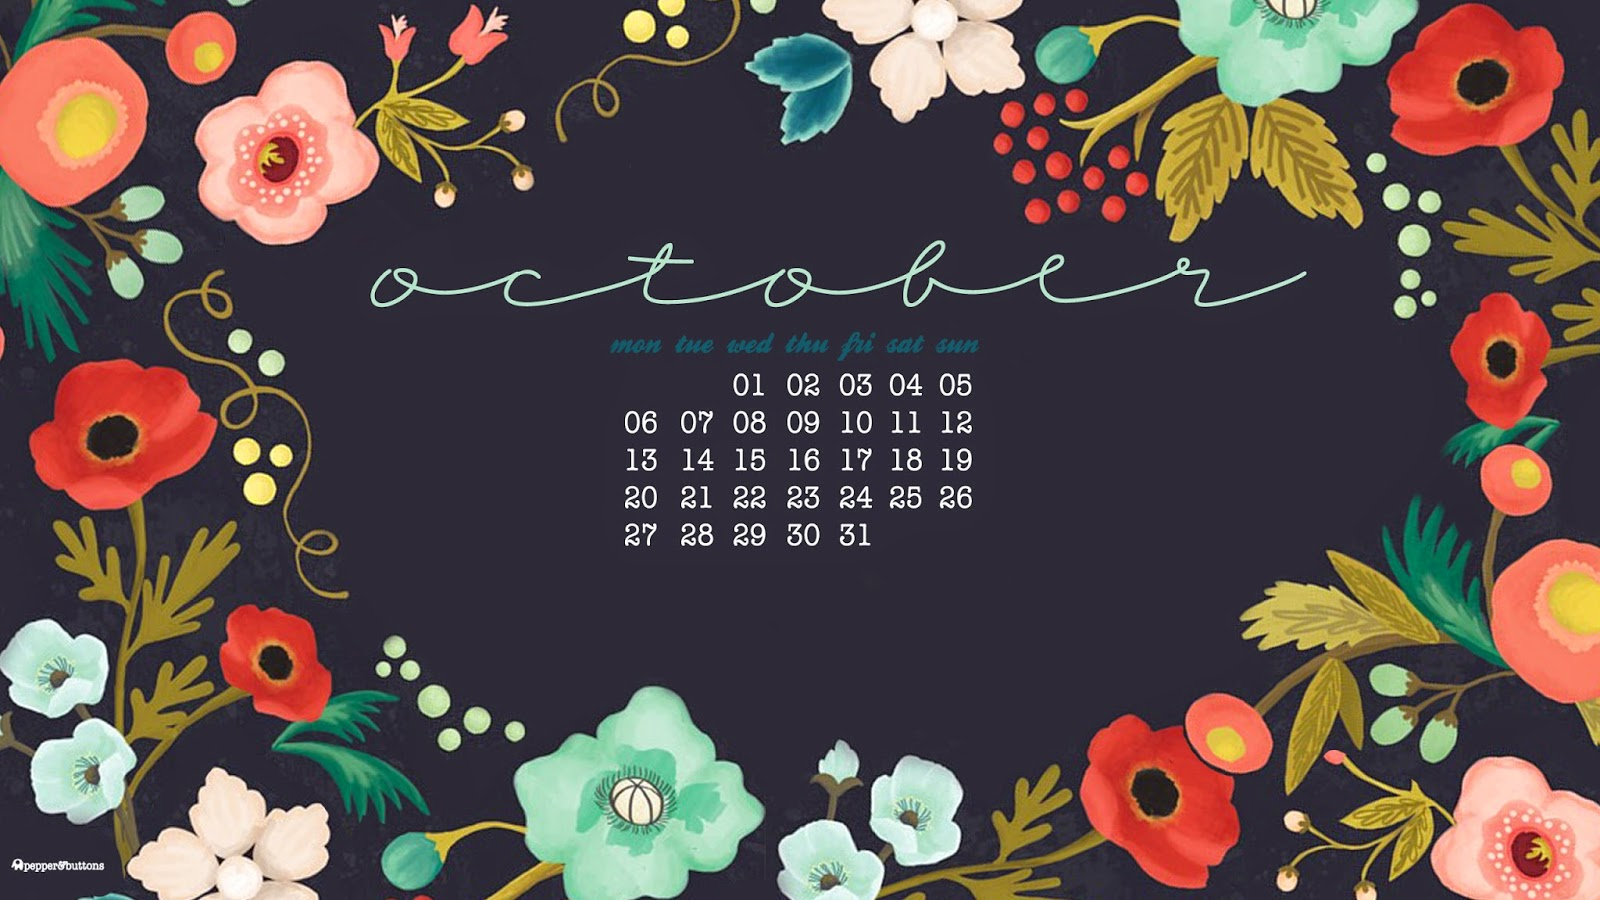 Wallpaper Calendar Oct : Pepper and buttons october free desktop calendar